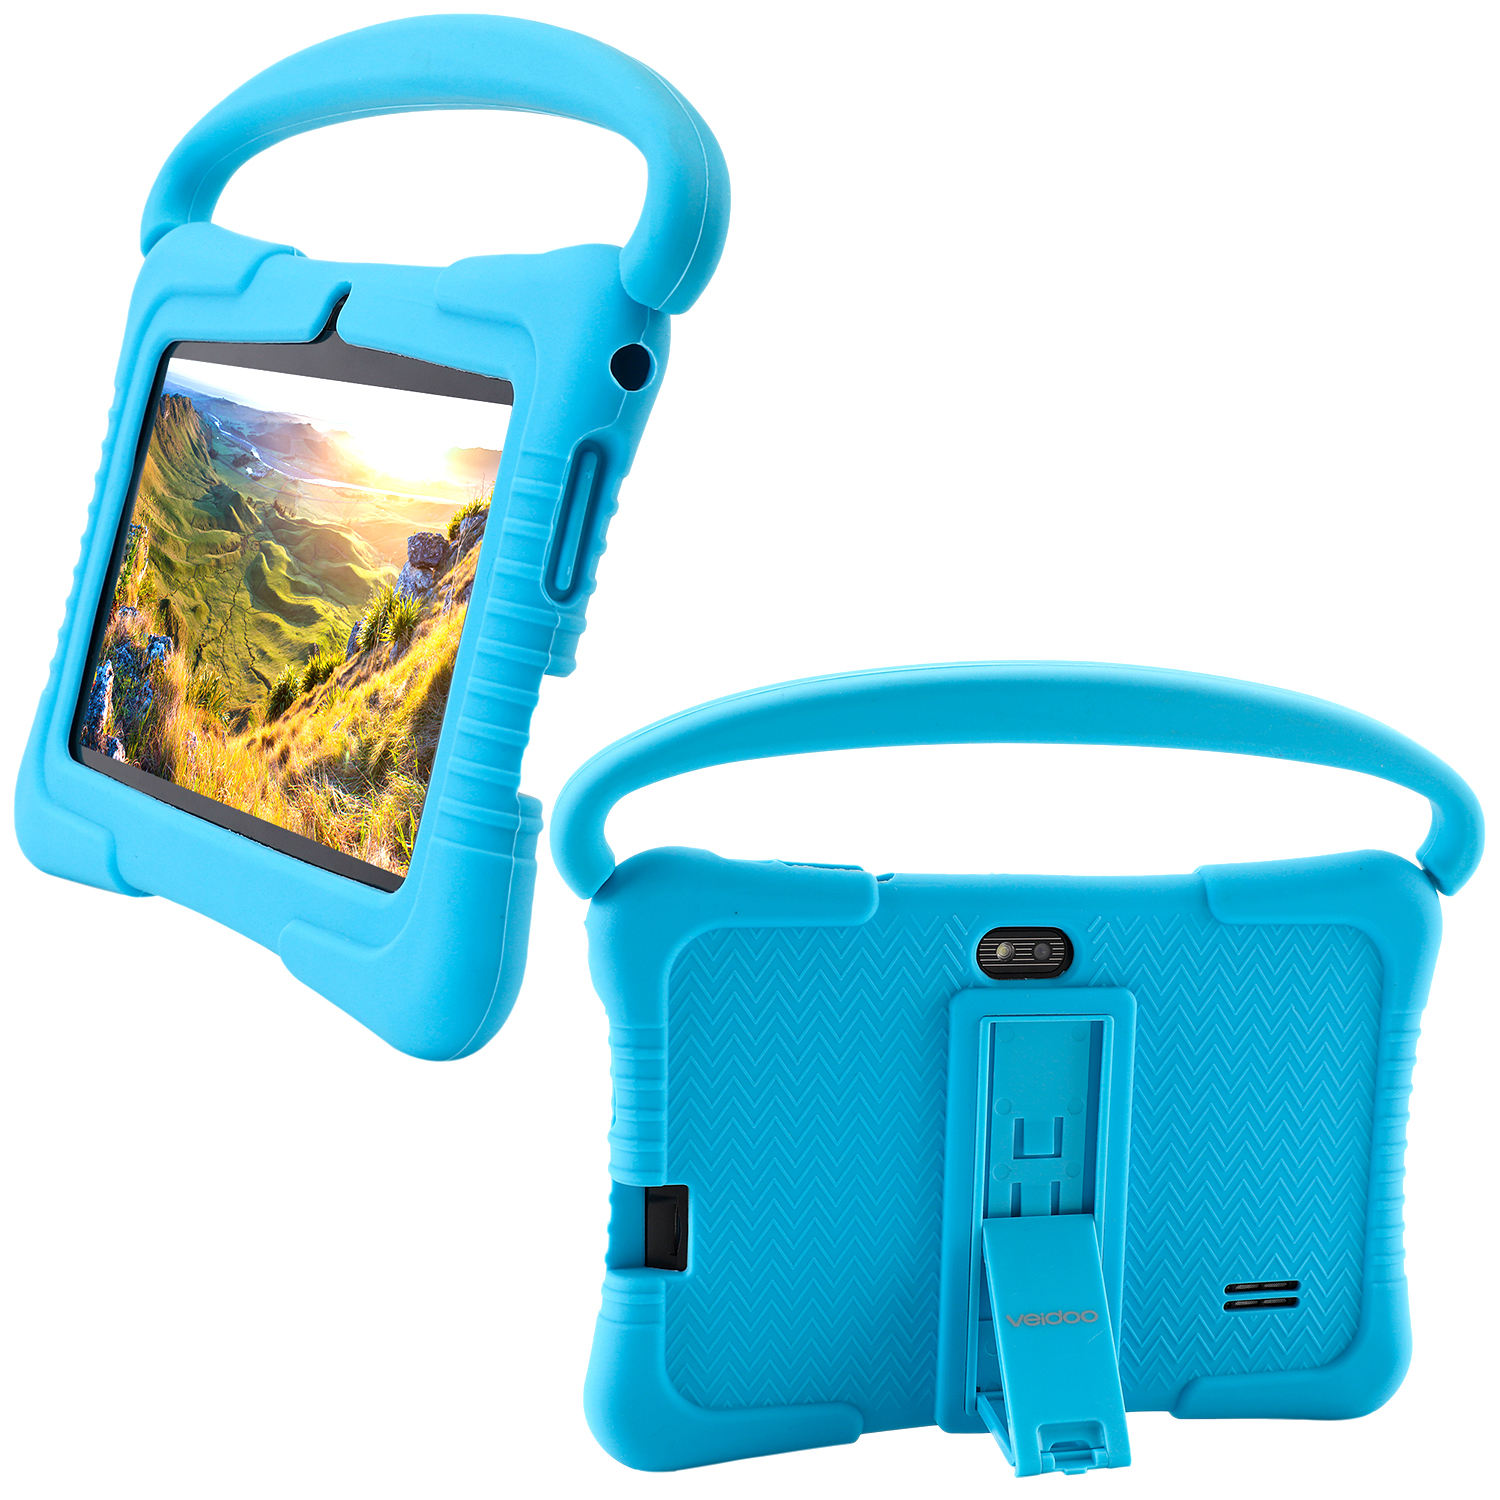 Shenzhen factory price 7 inch android tablet pc learning educational kids tablet